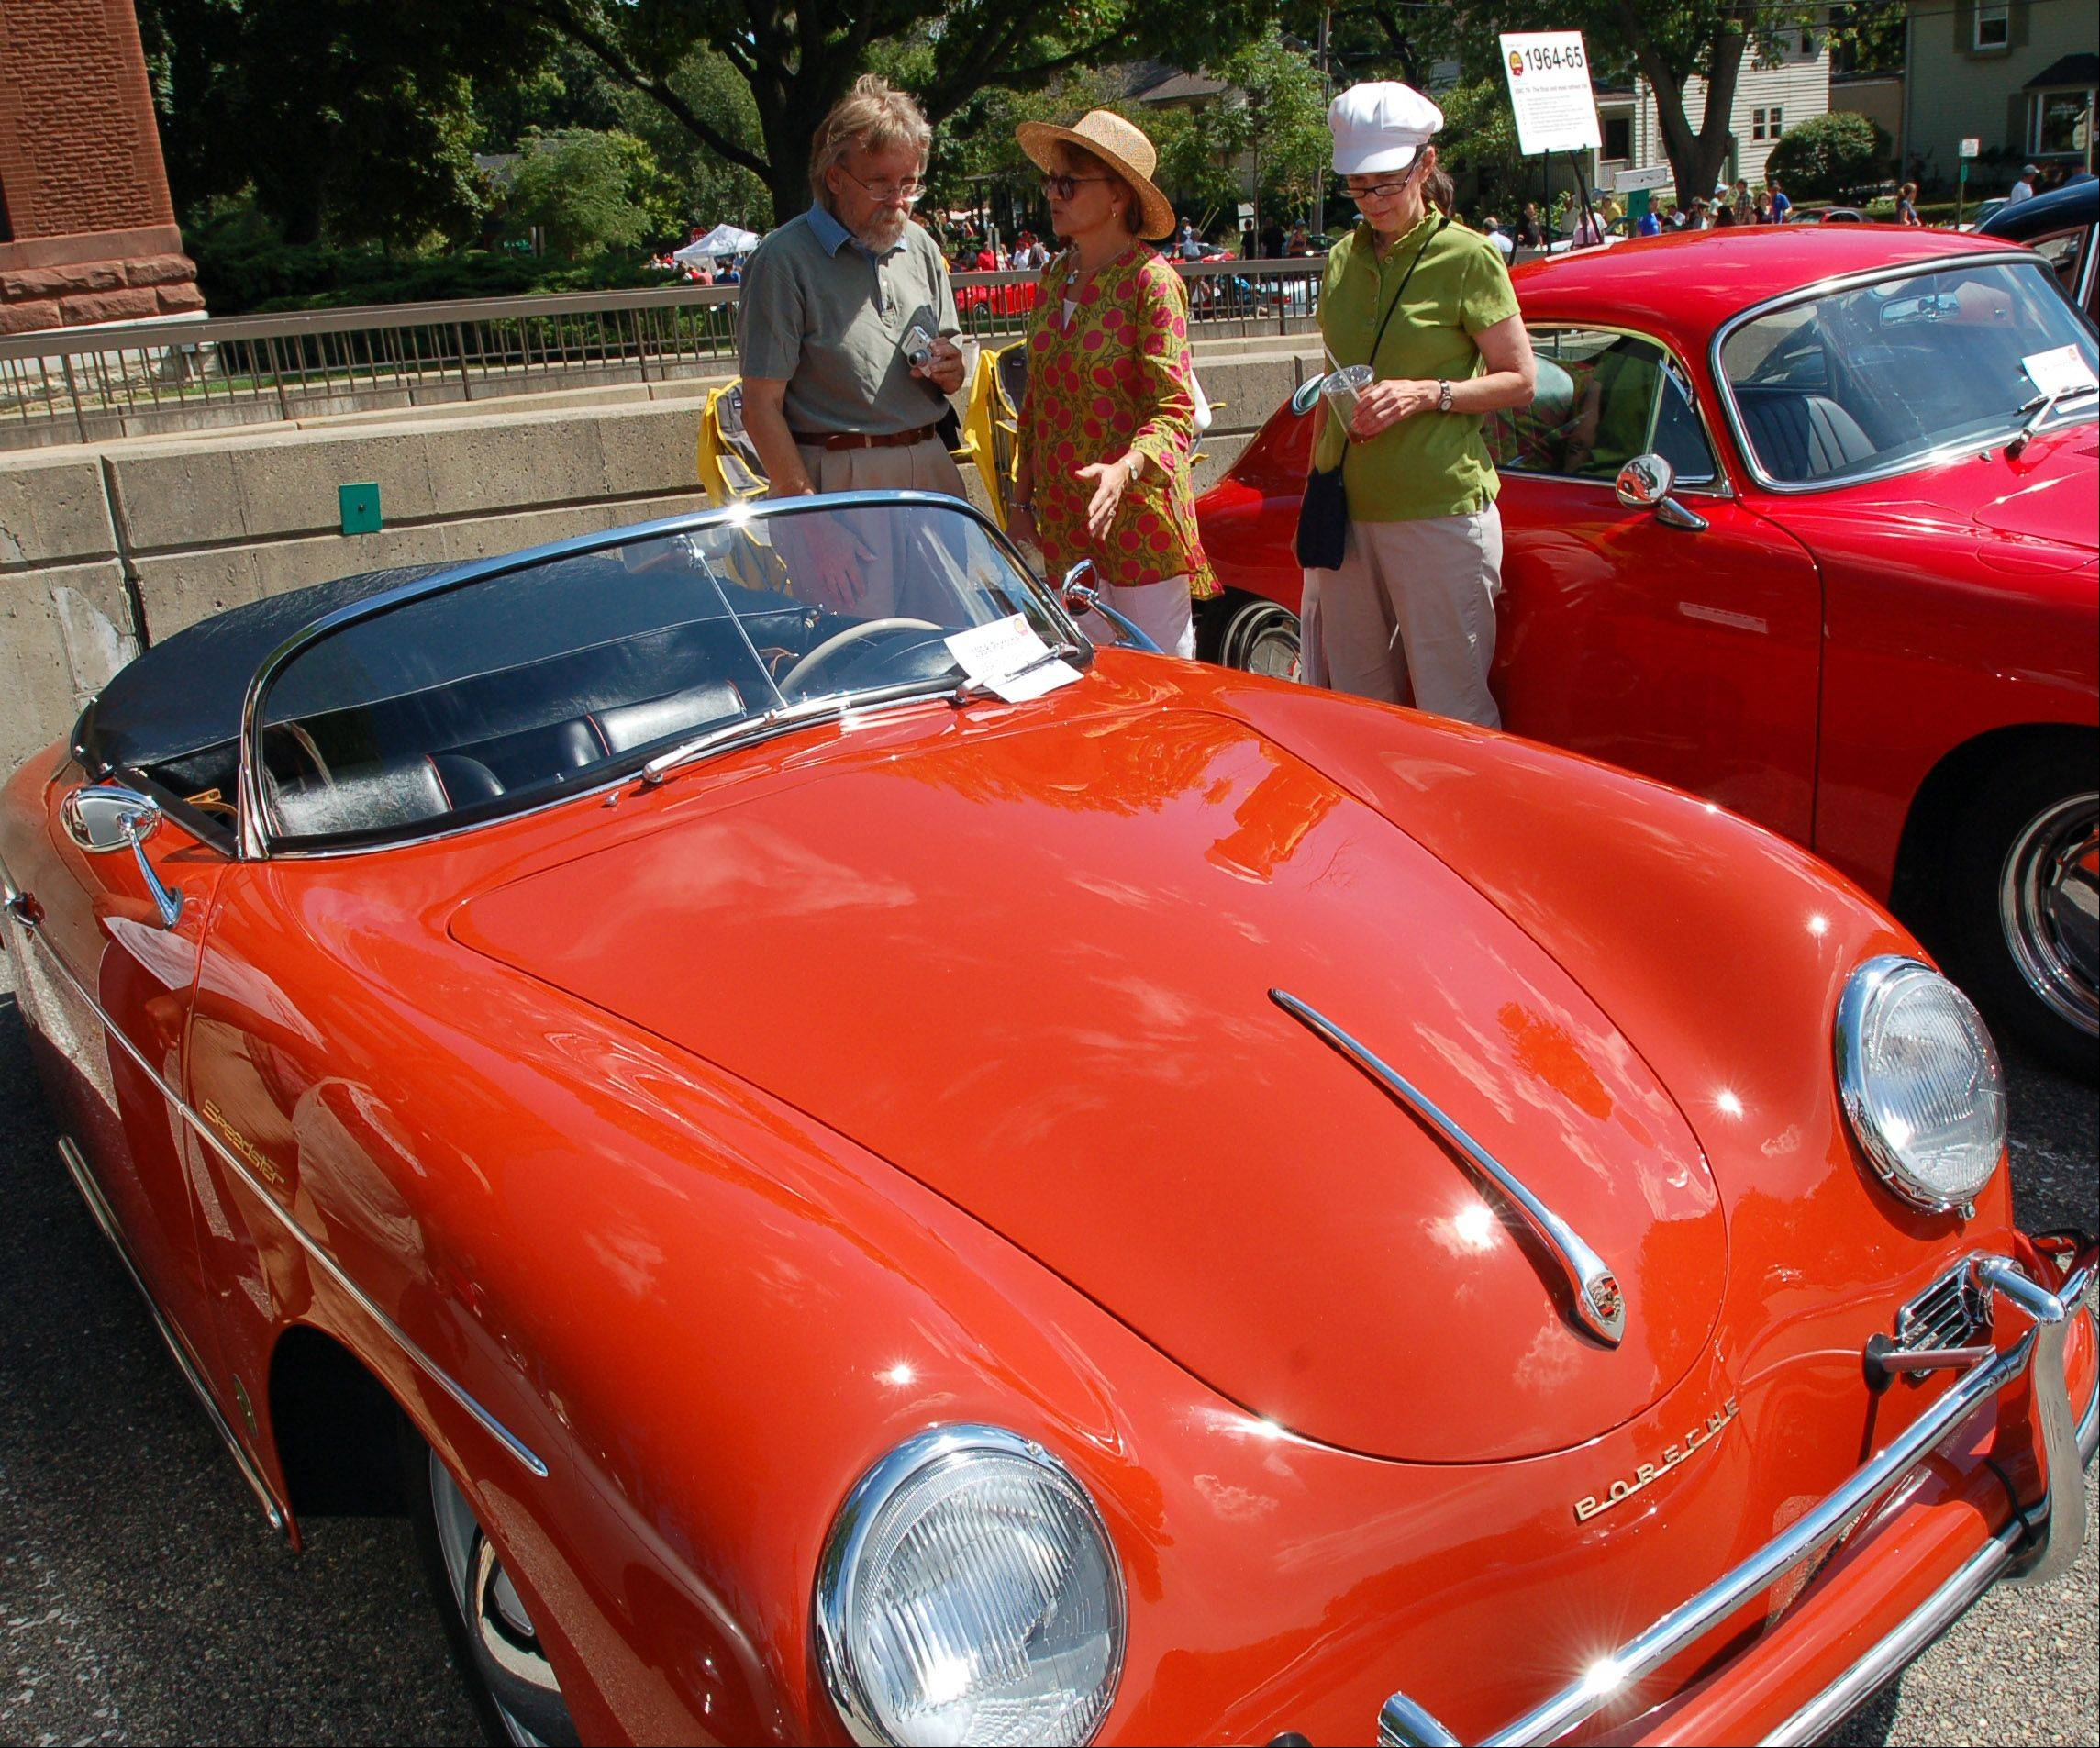 Daily Herald File PhotoTom Drebenstedt, left, of Chicago, Chris Aupperle of Rockford and Kathy Chilis of Chicago enjoyed looking at a 1958 Porsche 356A (T2) Speedster during a previous year's Geneva Concours d'Elegance classic car show.